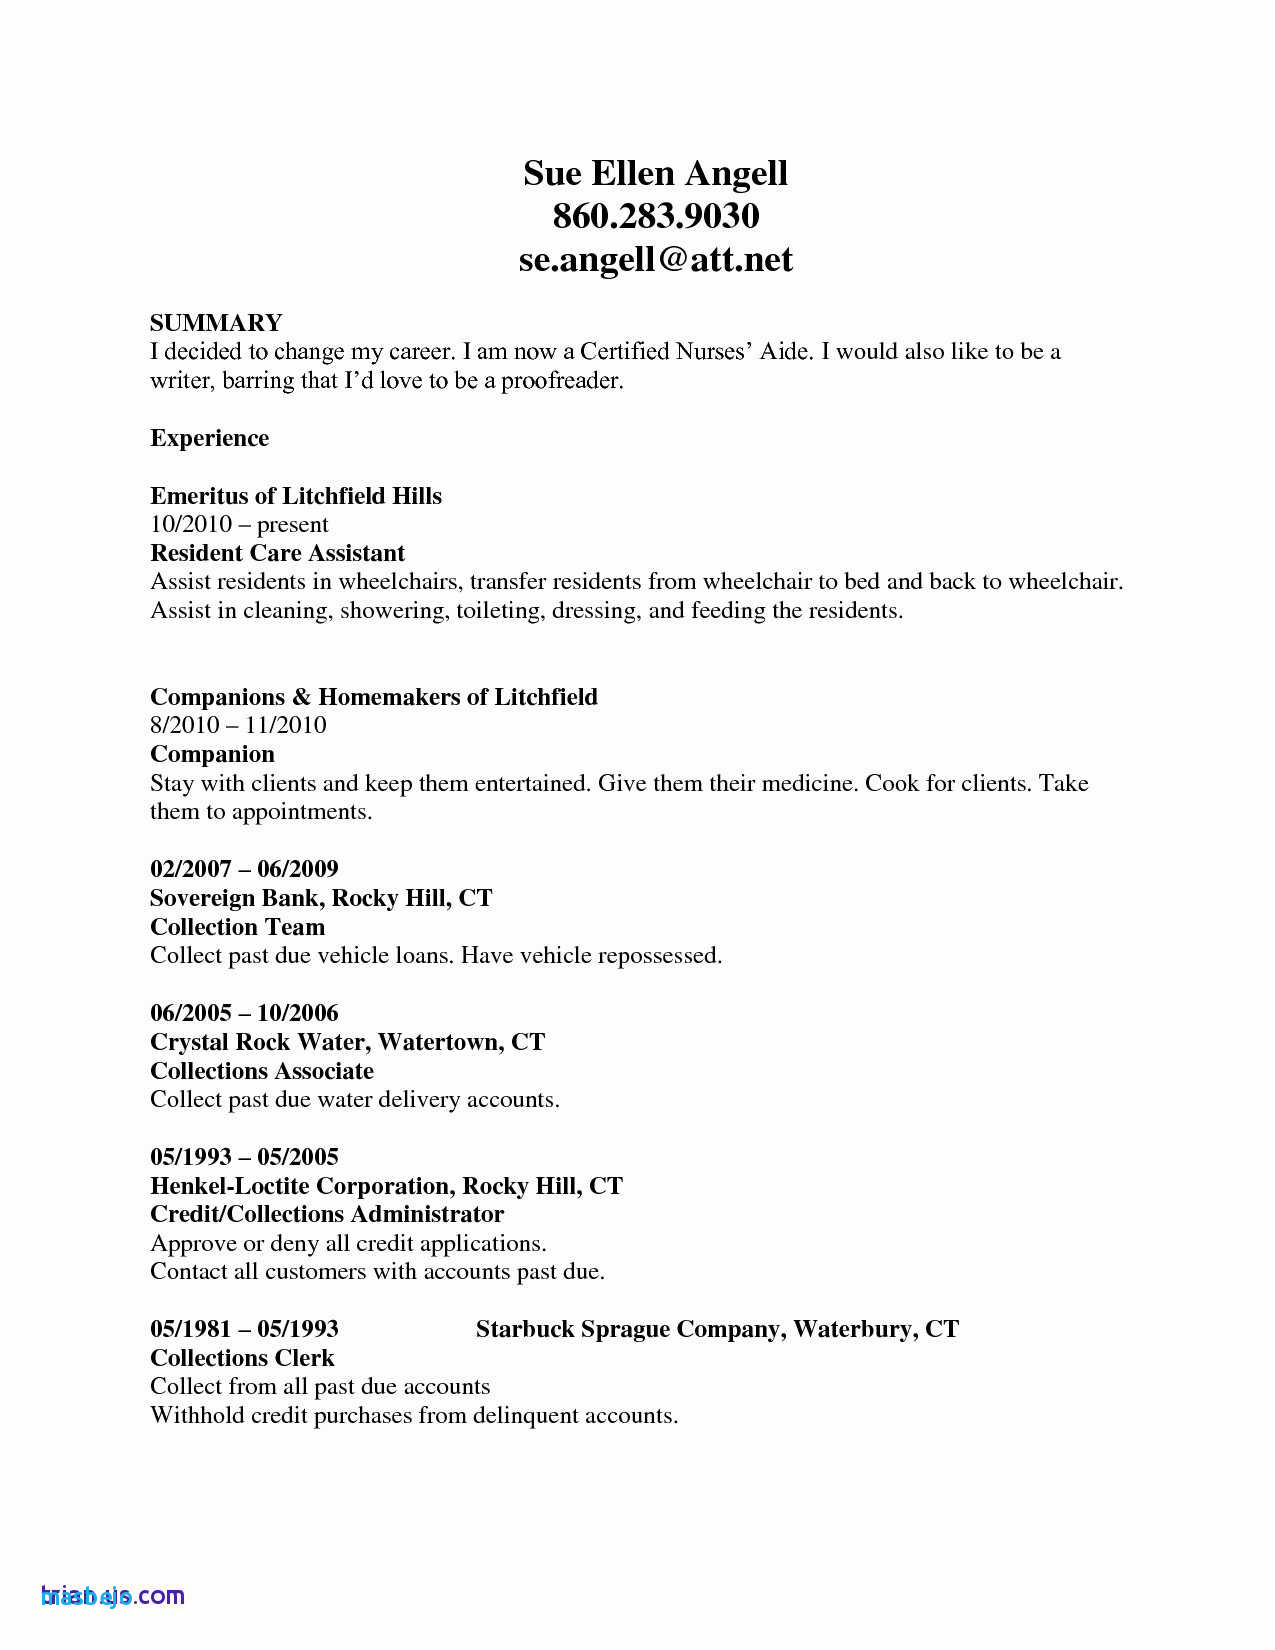 Cna Resume with No Experience - Cna Resume Rn Bsn Resume Awesome Nurse Resume 0d Wallpapers 42